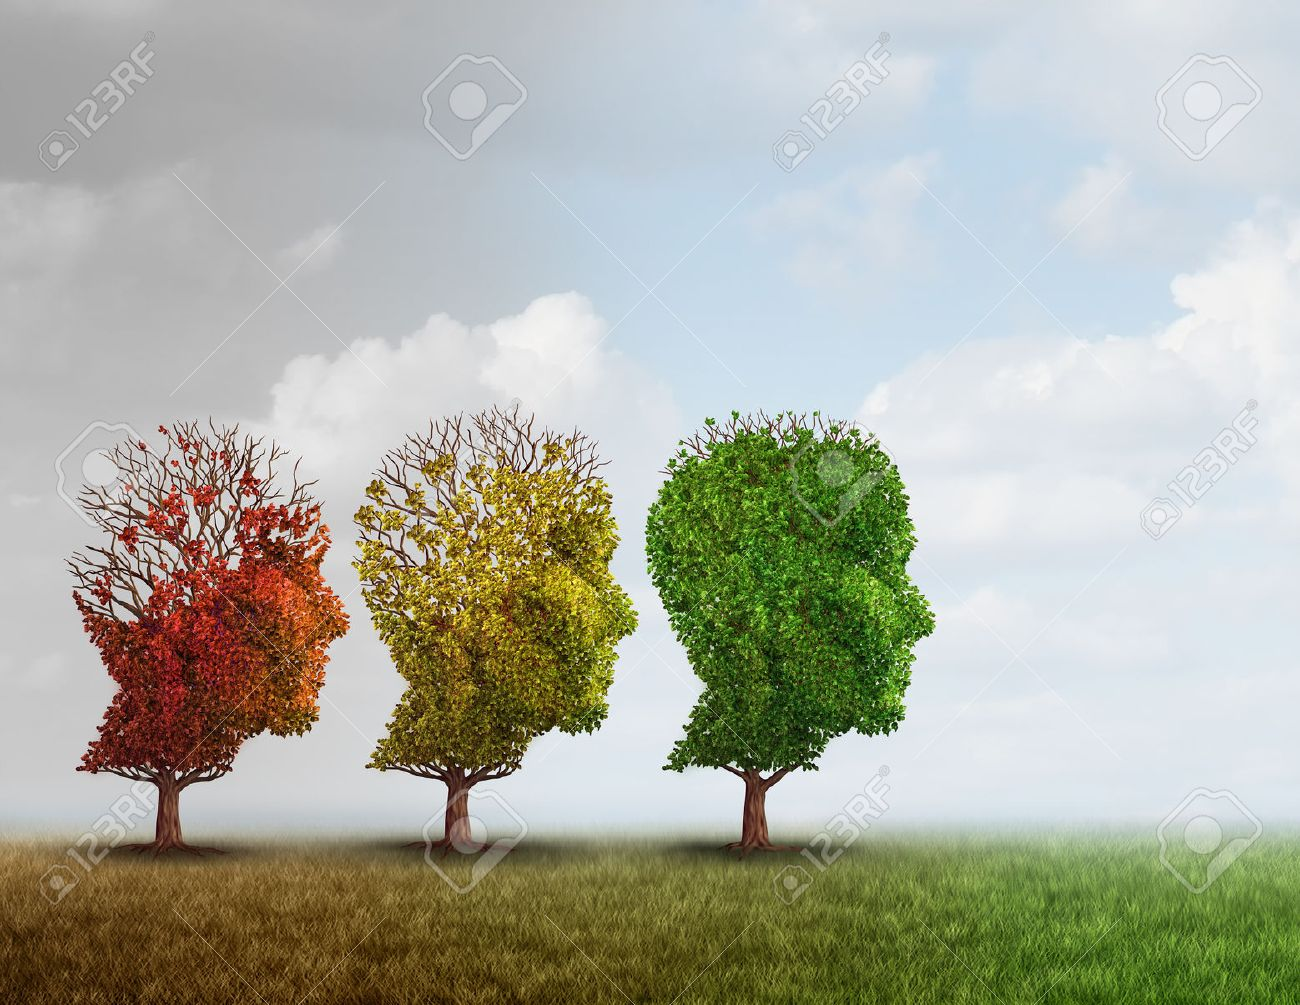 Dementia treatment and Alzheimer brain memory disease therapy concept as old trees recovering as a neurology or psychology cure metaphor with 3D illustration elements. - 66755841